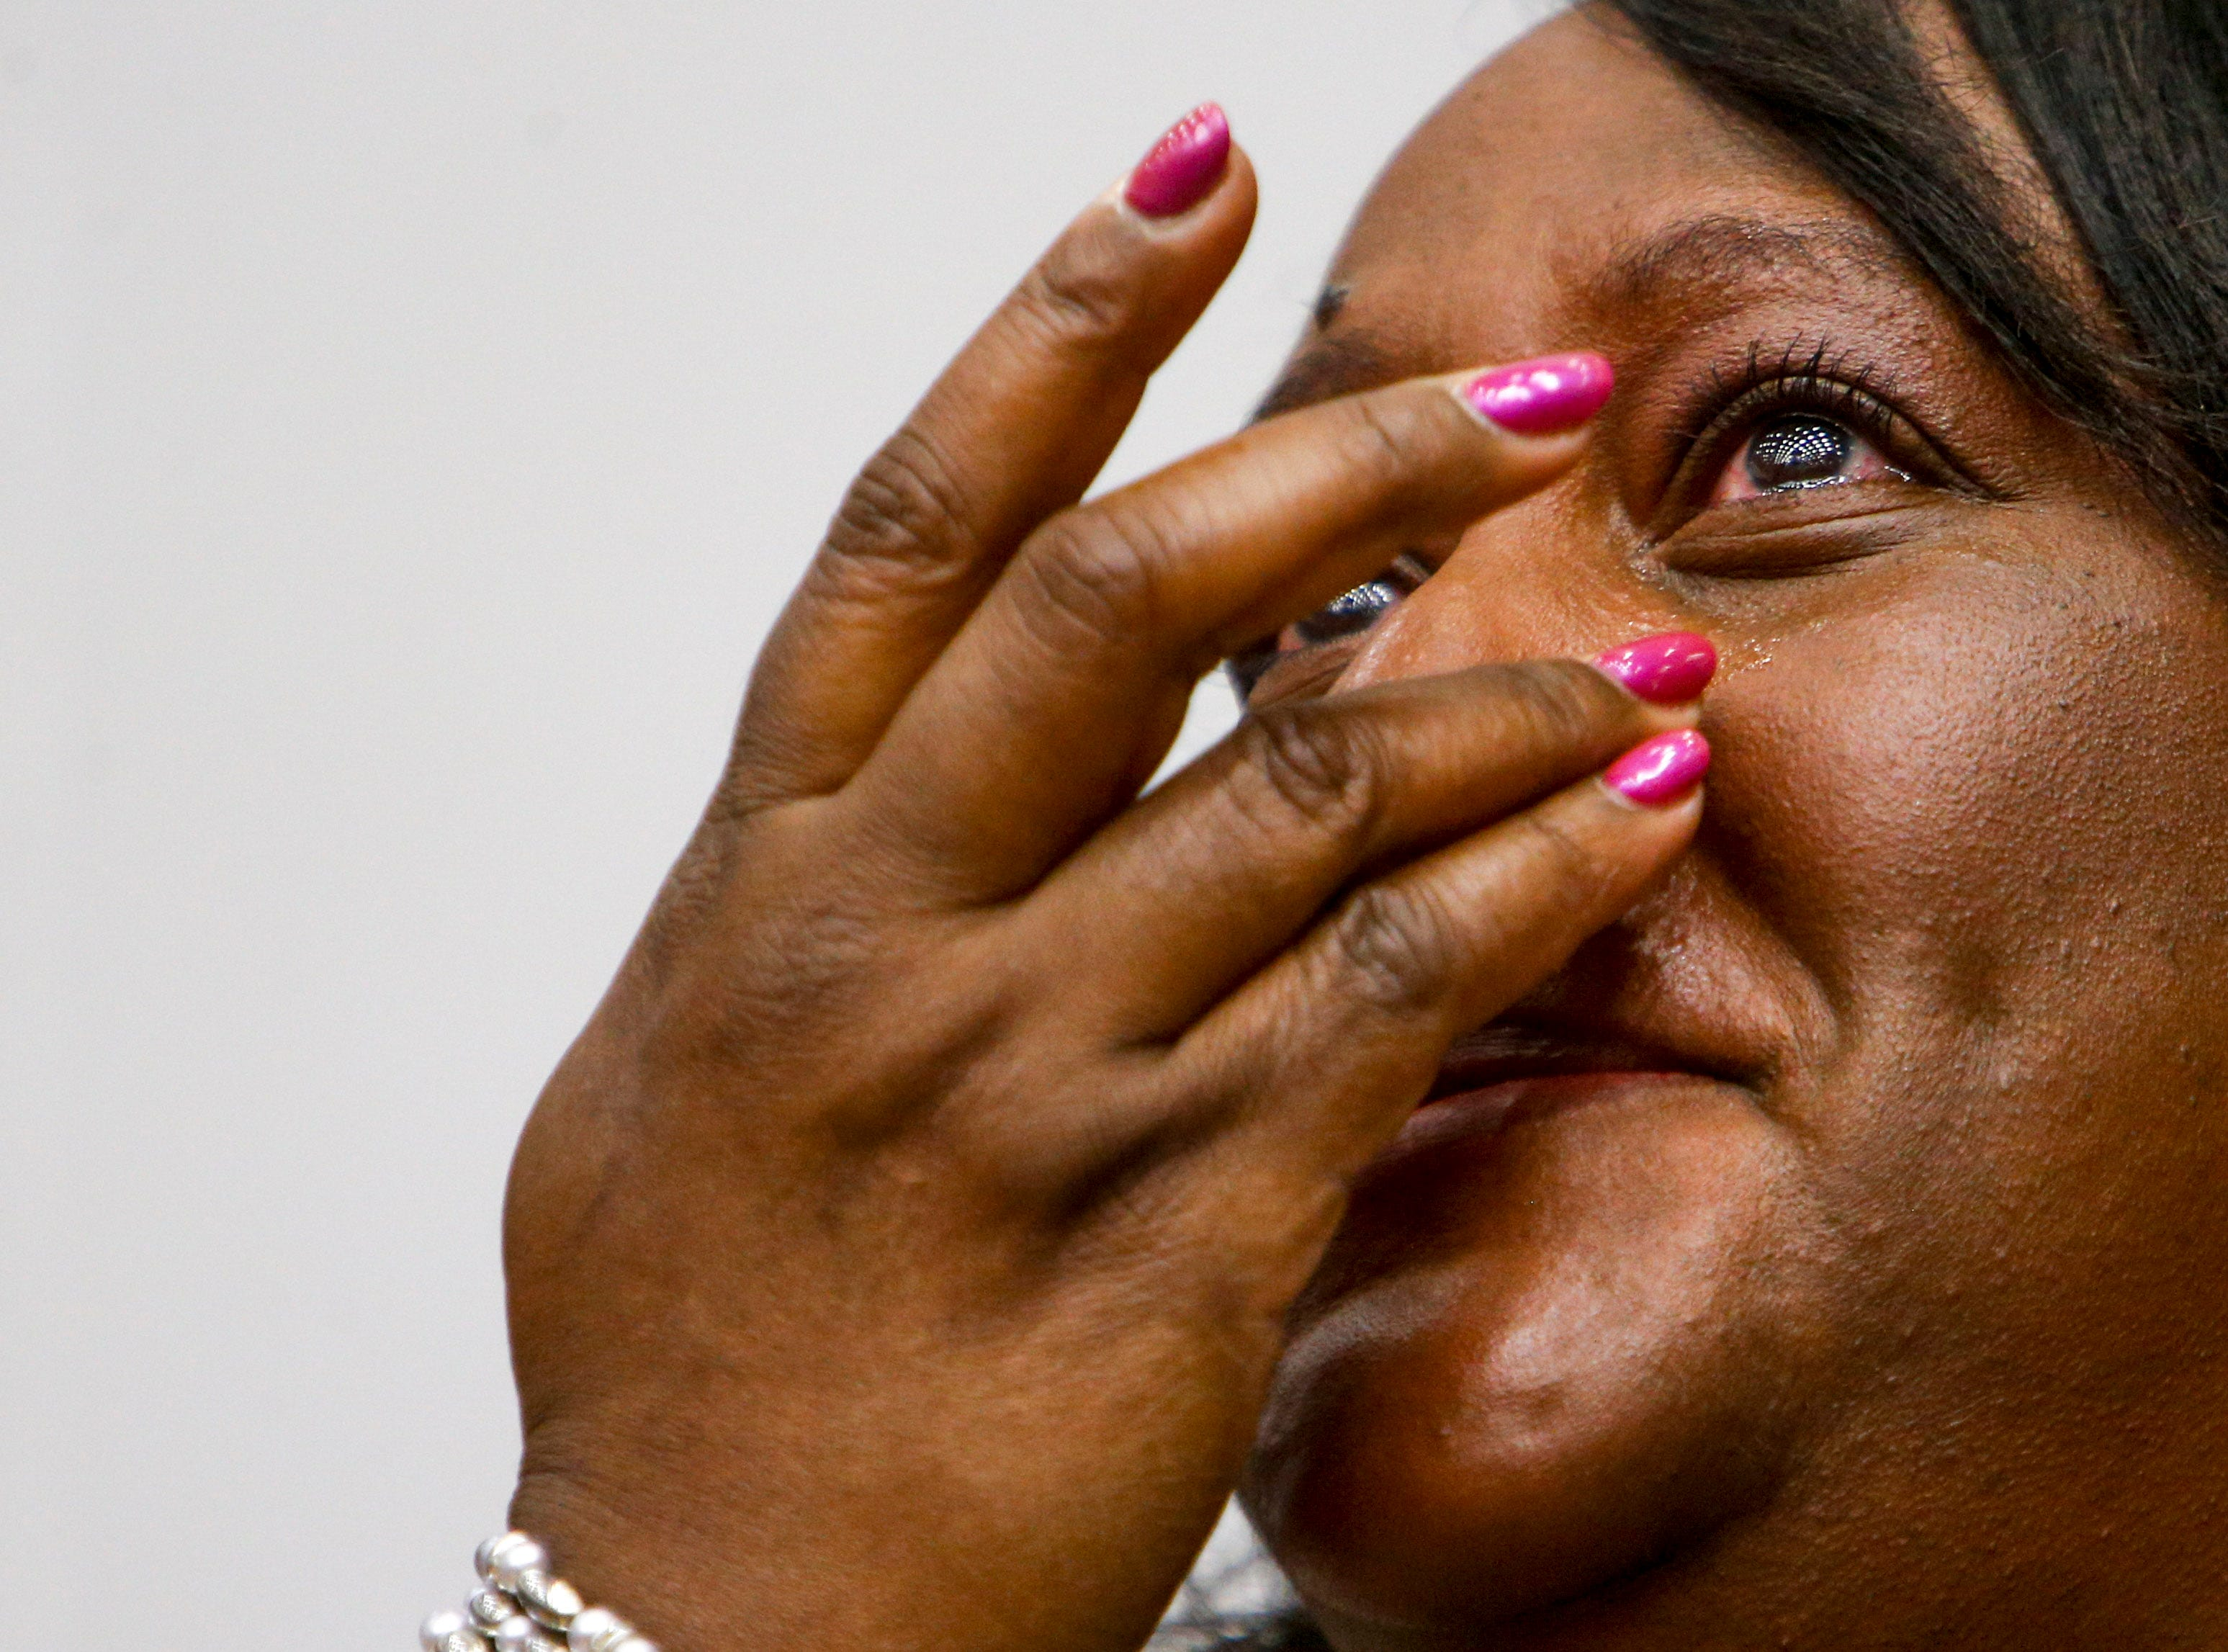 Kim Morrow, who works in housing at APSU, wipes away tears as she watches some students she knows walk and receive their diplomas at the Austin Peay spring commencement ceremony 2019 for College of Business and College of STEM at Winfield Dunn Center in Clarksville, Tenn., on Friday, May 3, 2019.